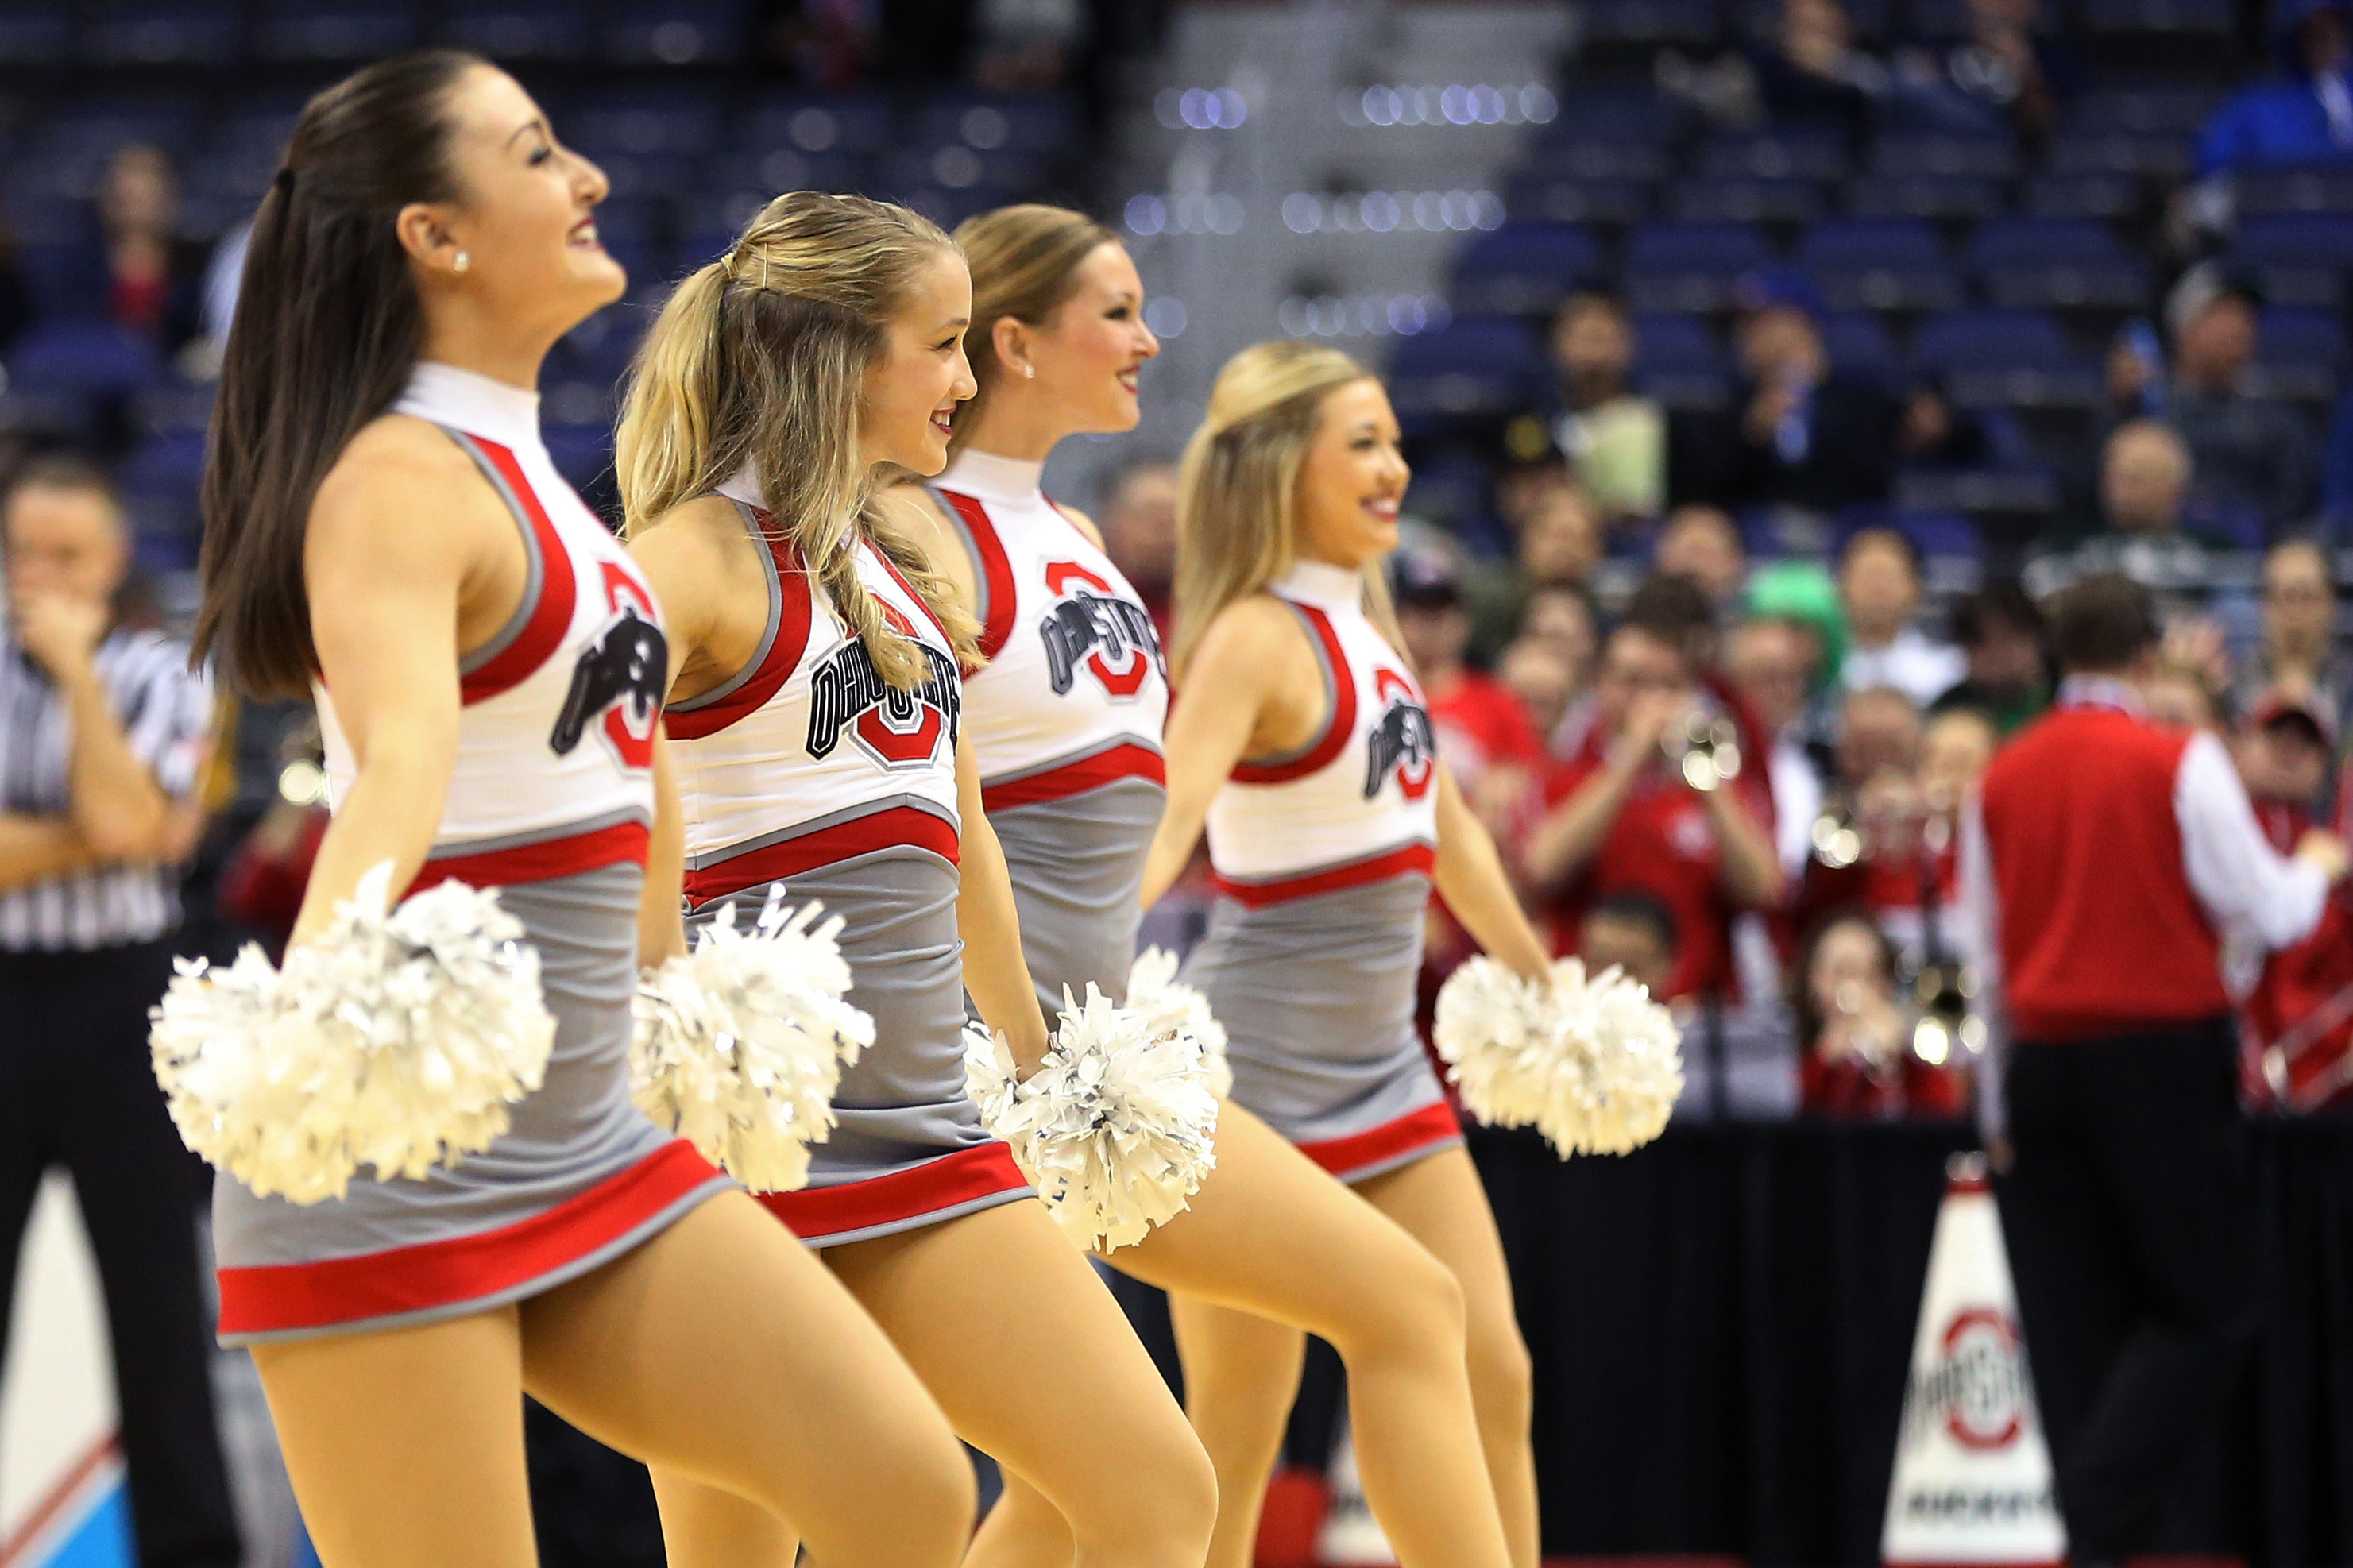 Members of the Ohio State Buckeyes dance team dance on the court during a timeout against the Rutgers Scarlet Knights in the second half during the Big Ten Conference Tournament at Verizon Center. The Scarlet Knights won 66-57. Geoff Burke-USA TODAY Sports